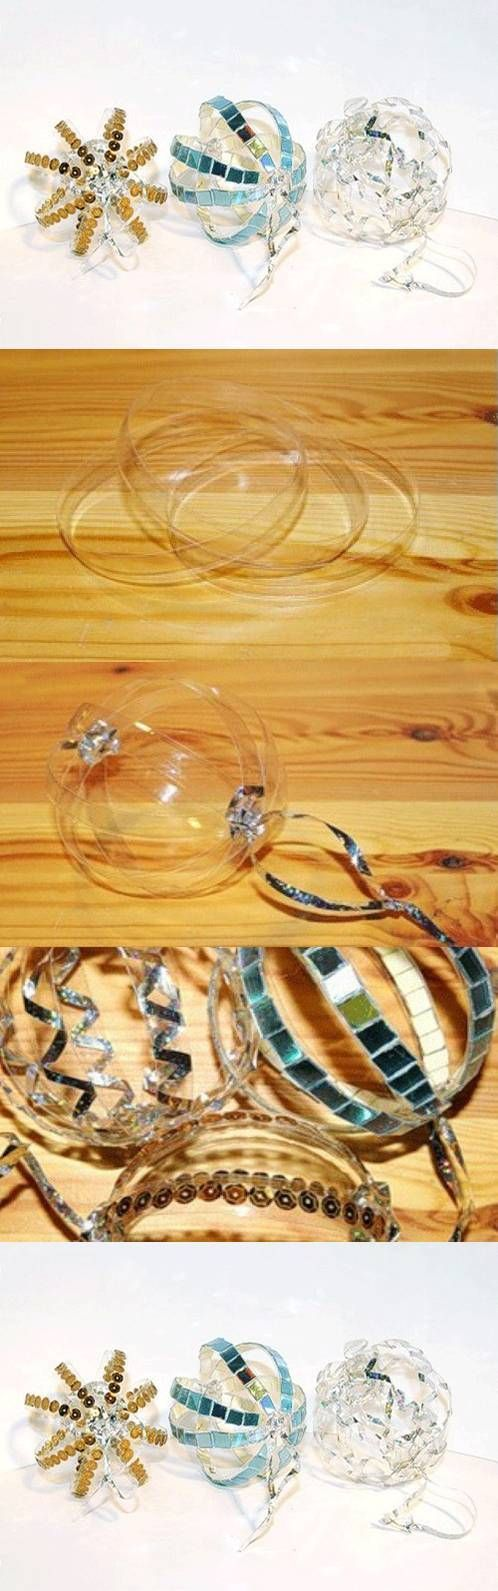 DIY Plastic Bottle Ring Ornaments DIY Projects /...